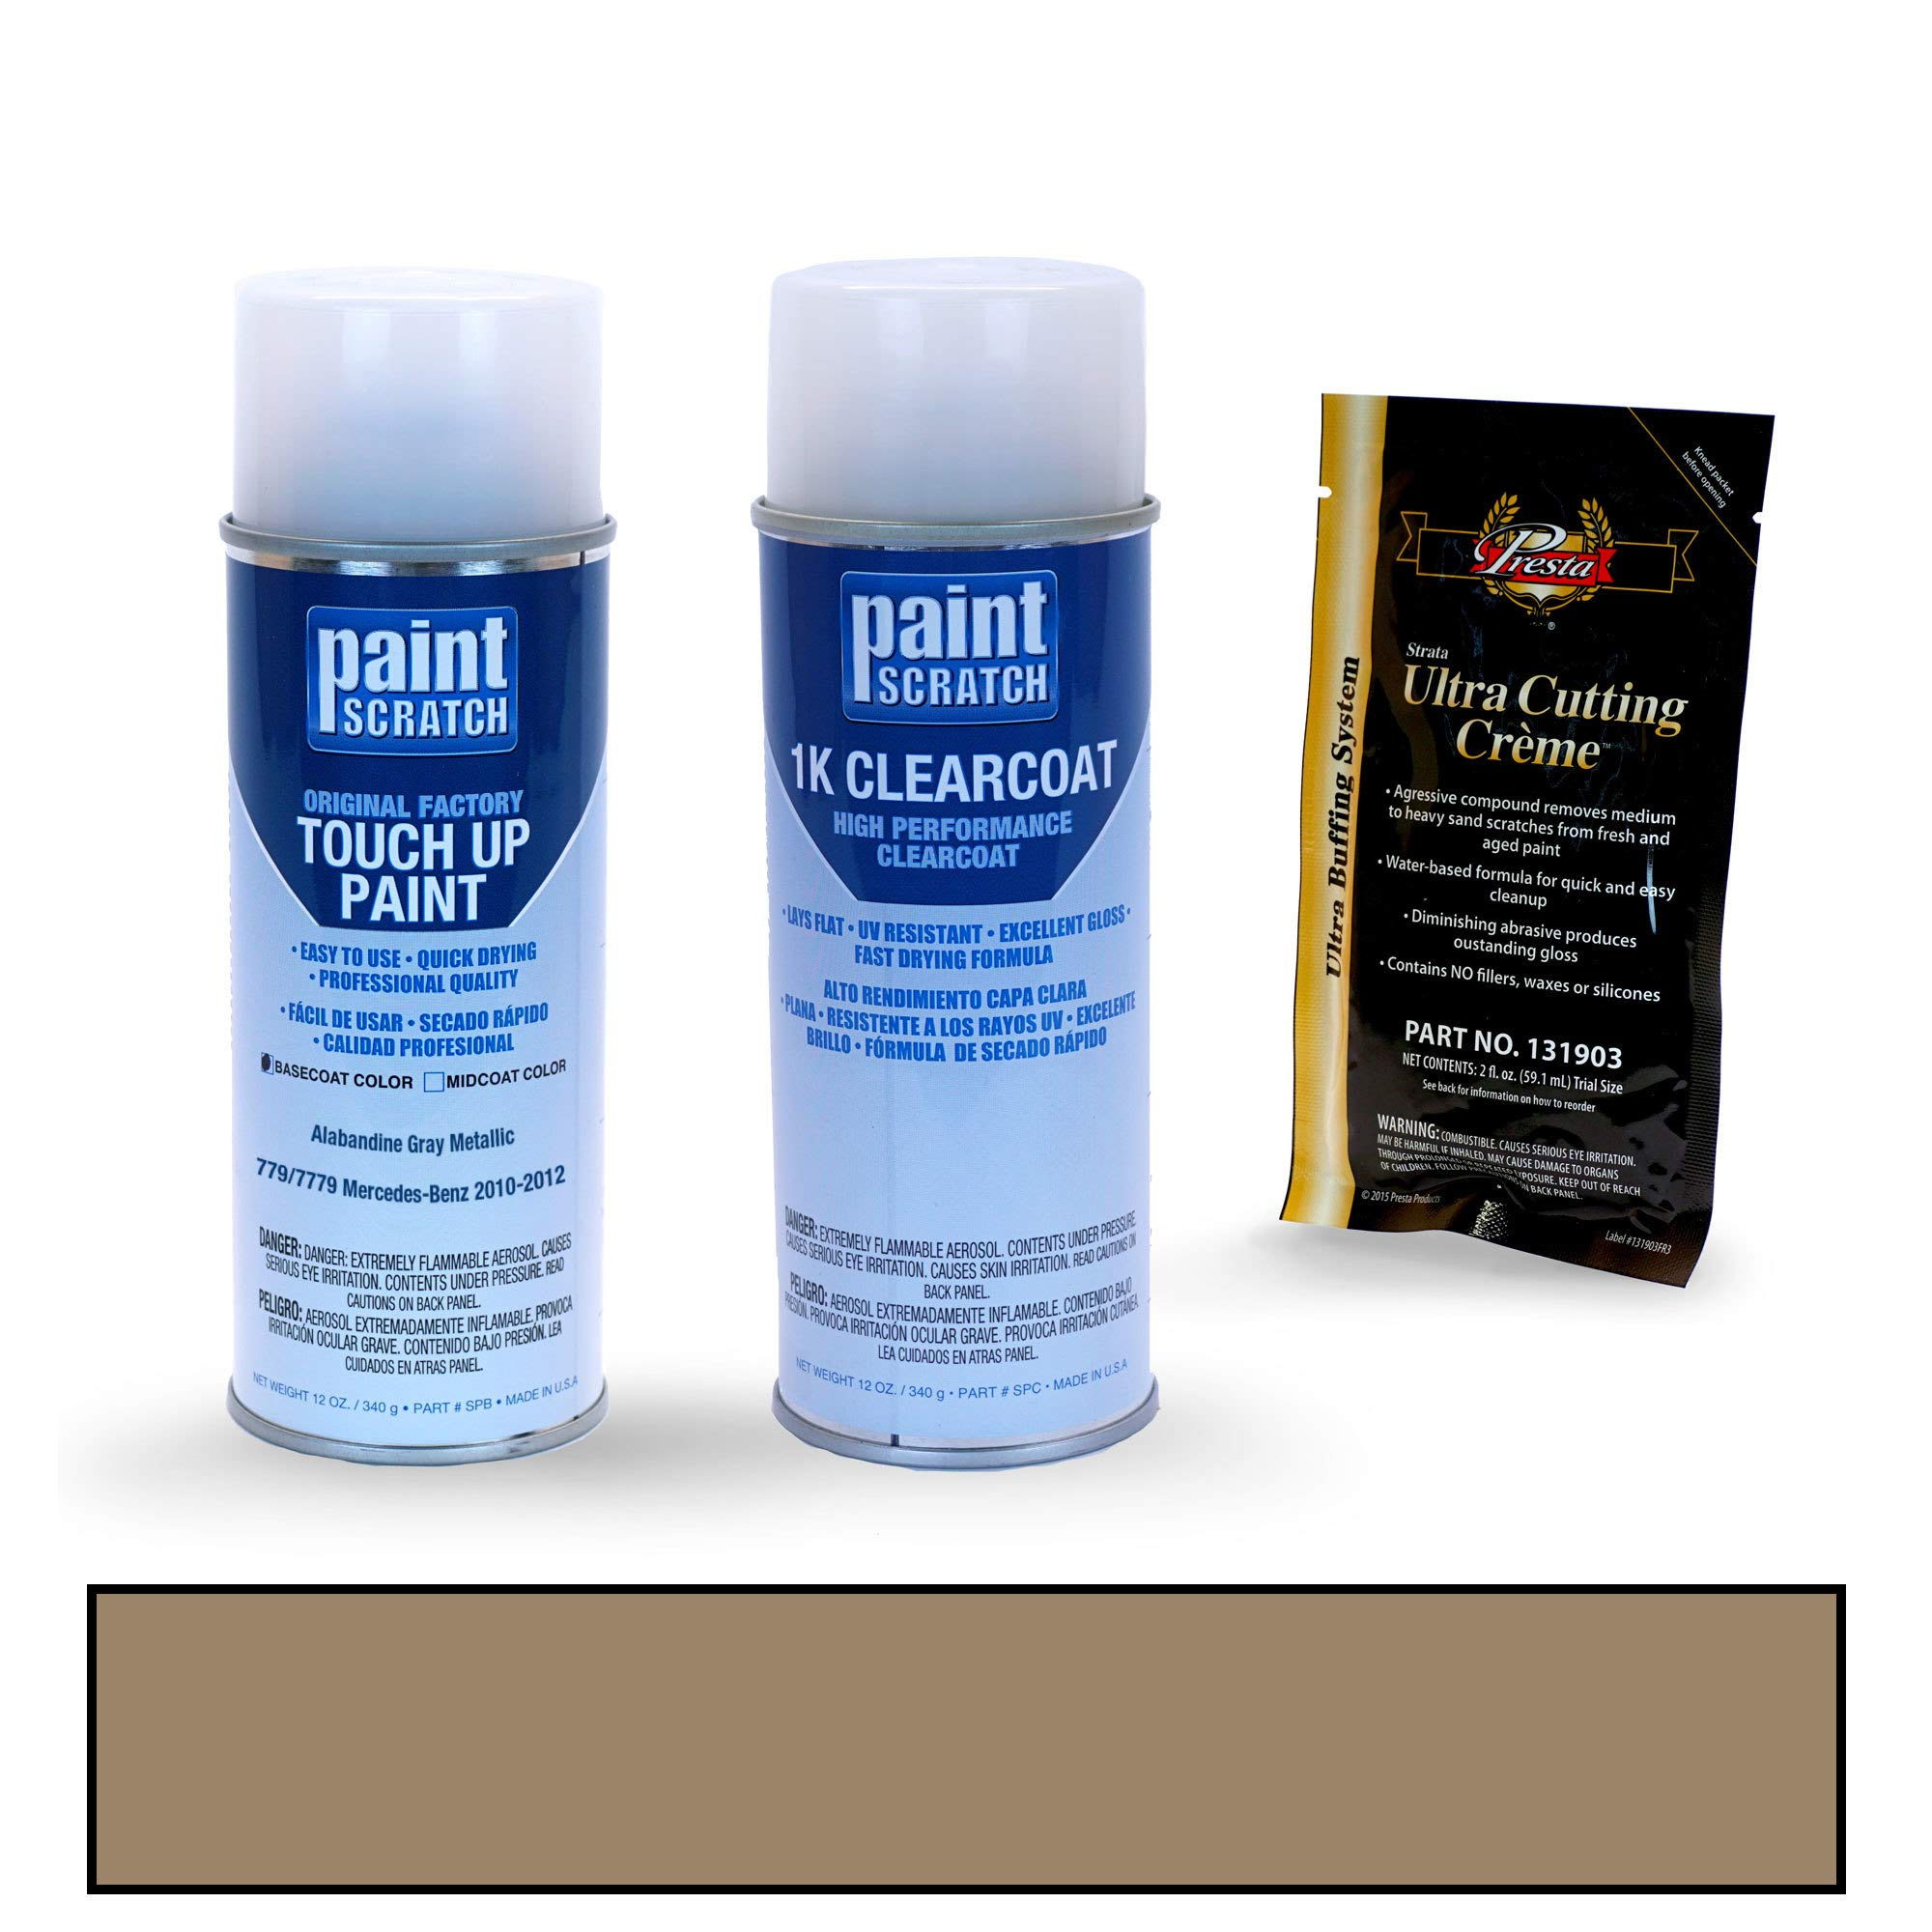 PAINTSCRATCH Touch Up Paint Spray Can Car Scratch Repair Kit - Compatible with Mercedes-Benz SL-Class Alabandine Gray Metallic (Color Code: 779/7779)